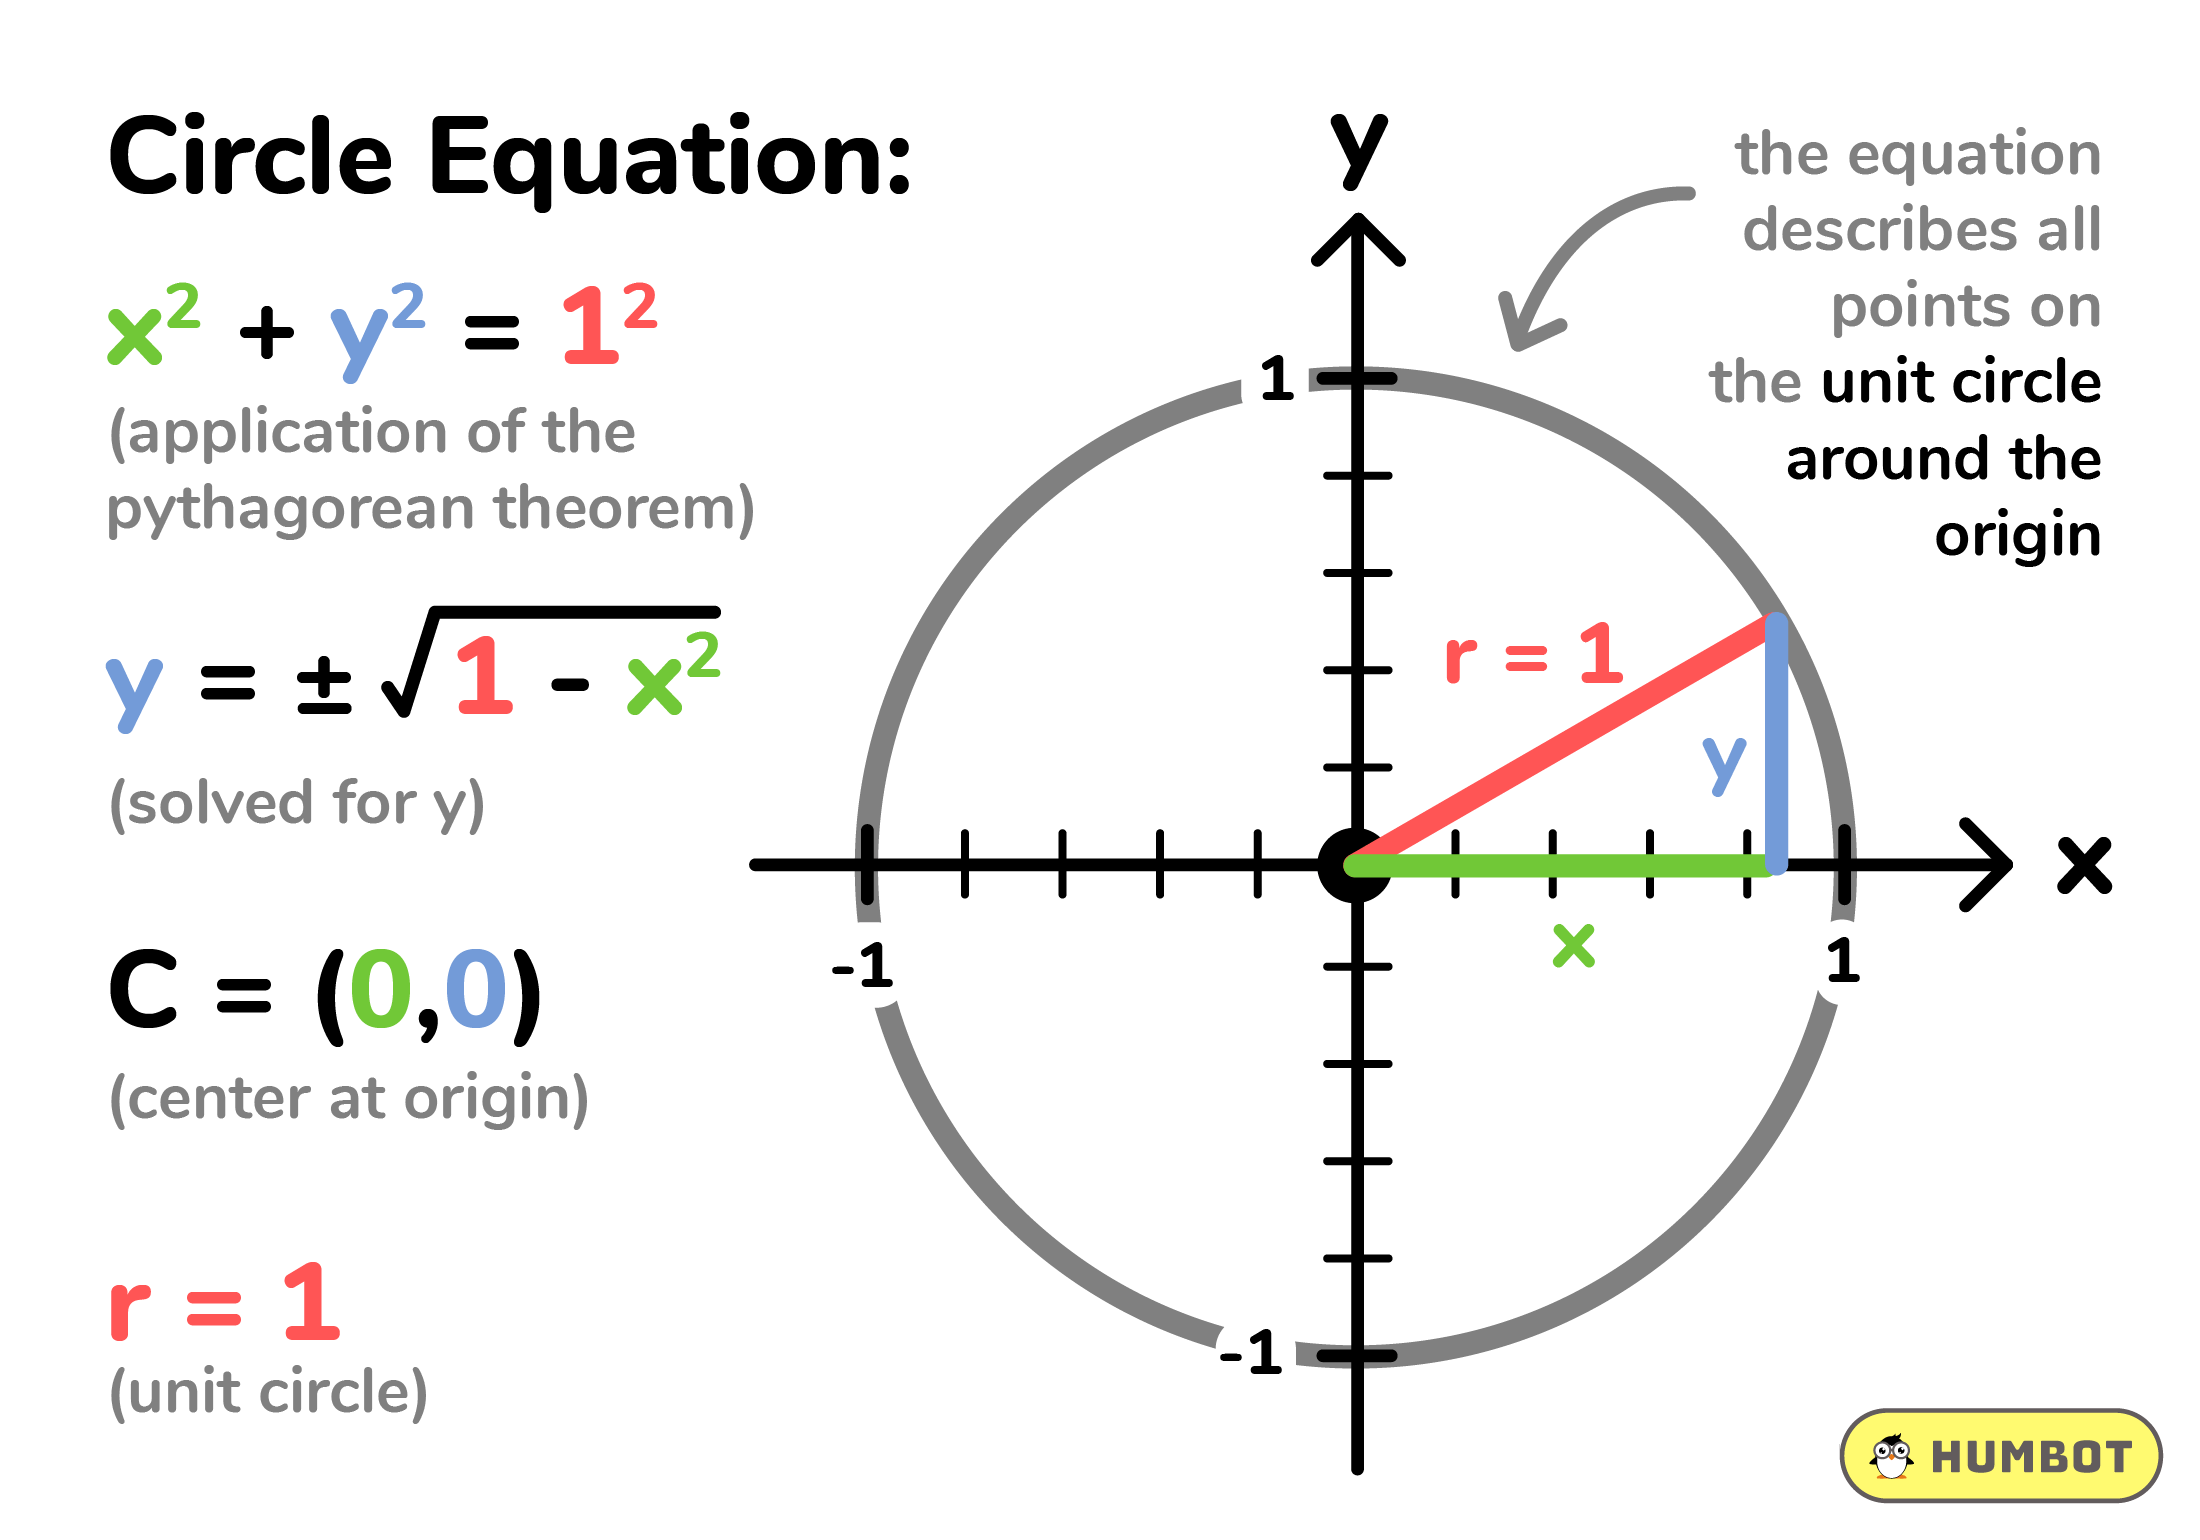 How To Solve For Y In Circle Equation